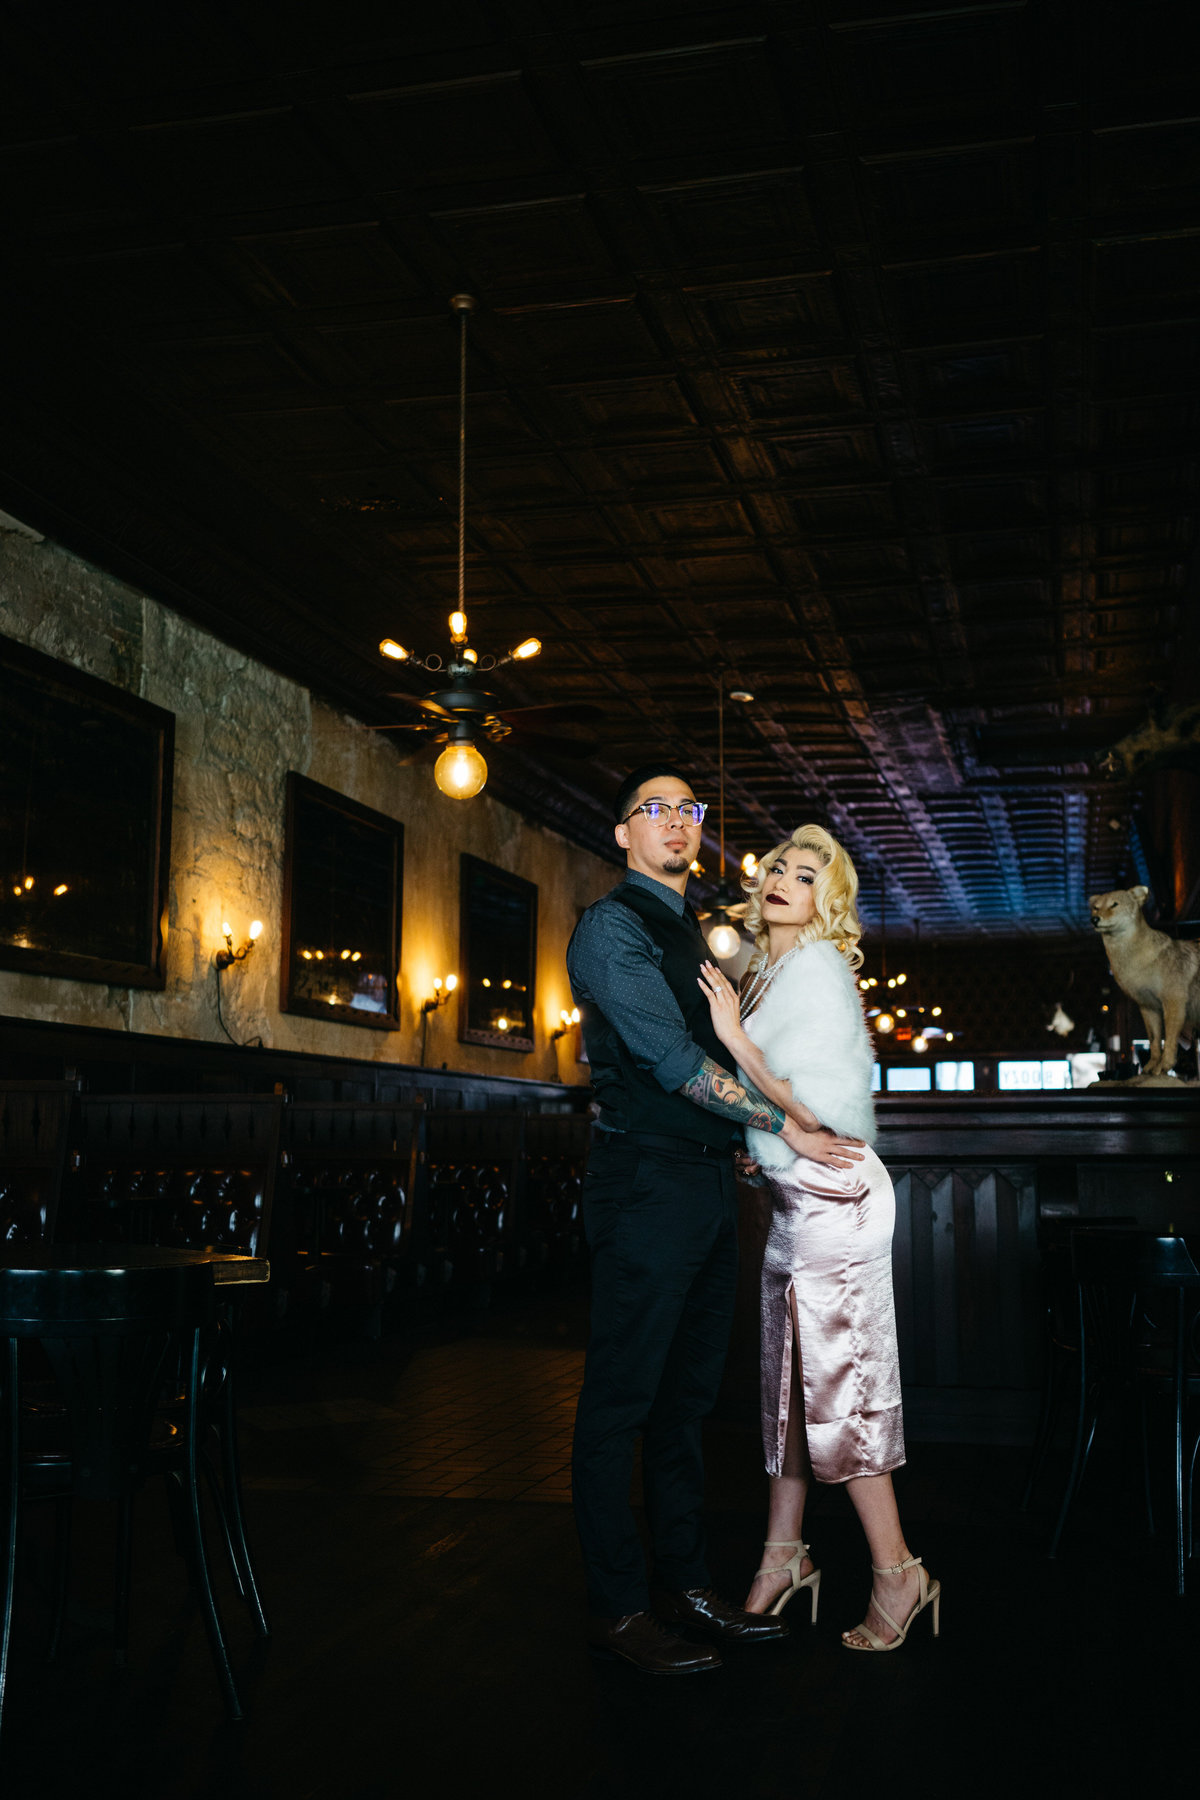 Couple posing for a picture for their engagement session at a bar in downtown San Antonio.